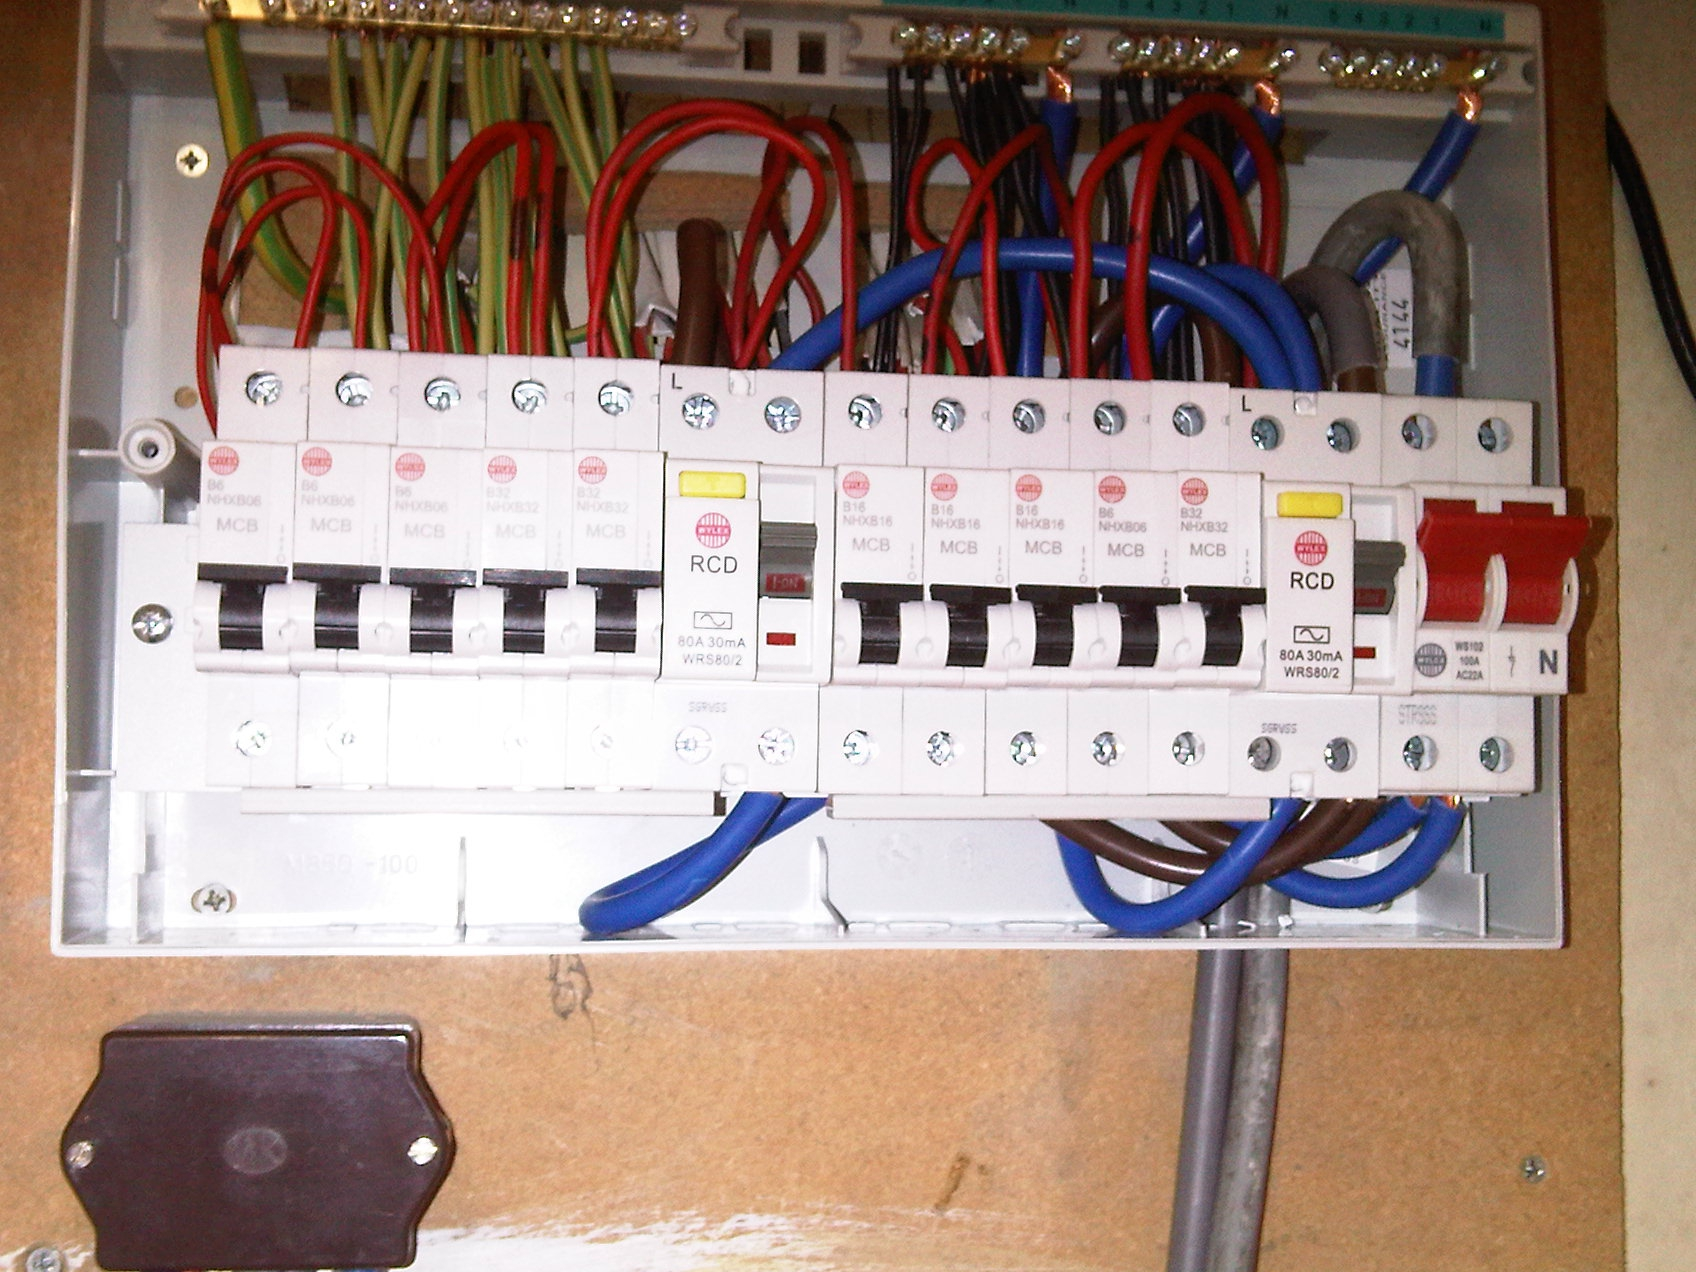 Fusebox 4 household fuse box residential fuse boxes \u2022 wiring diagrams j how to reset fuse box in house at alyssarenee.co